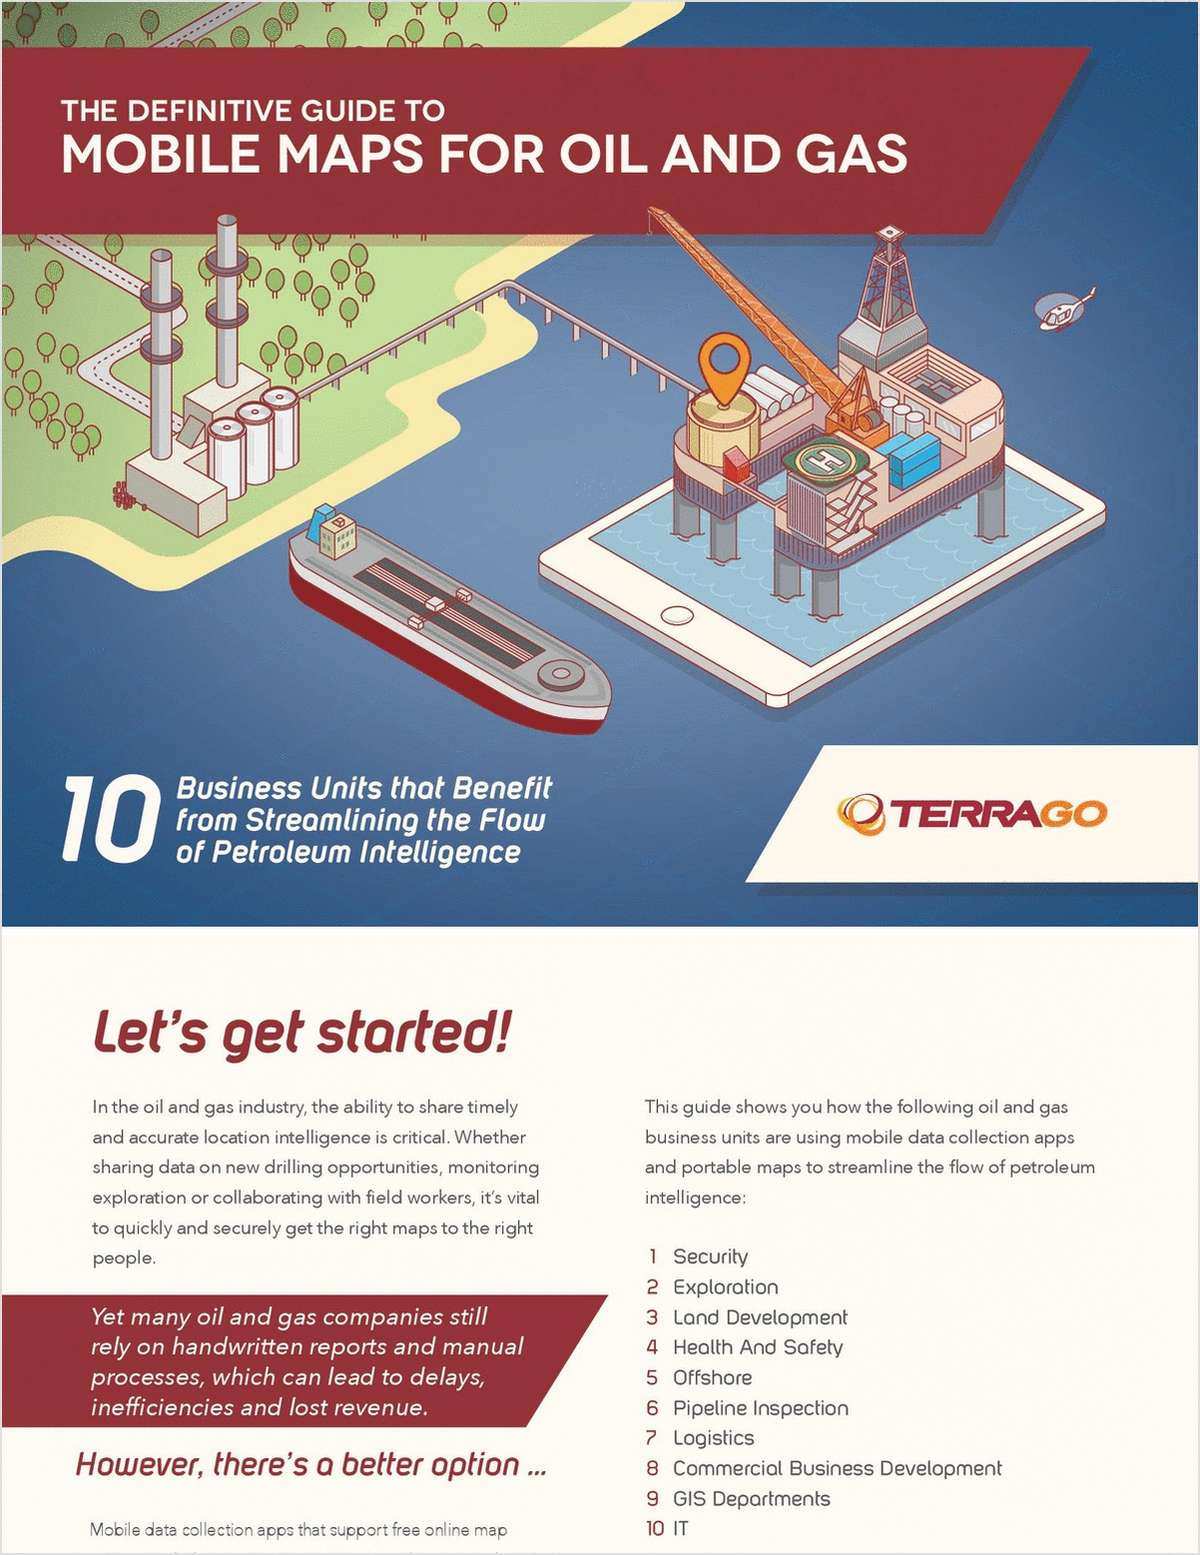 The Definitive Guide to Mobile Maps for Oil and Gas